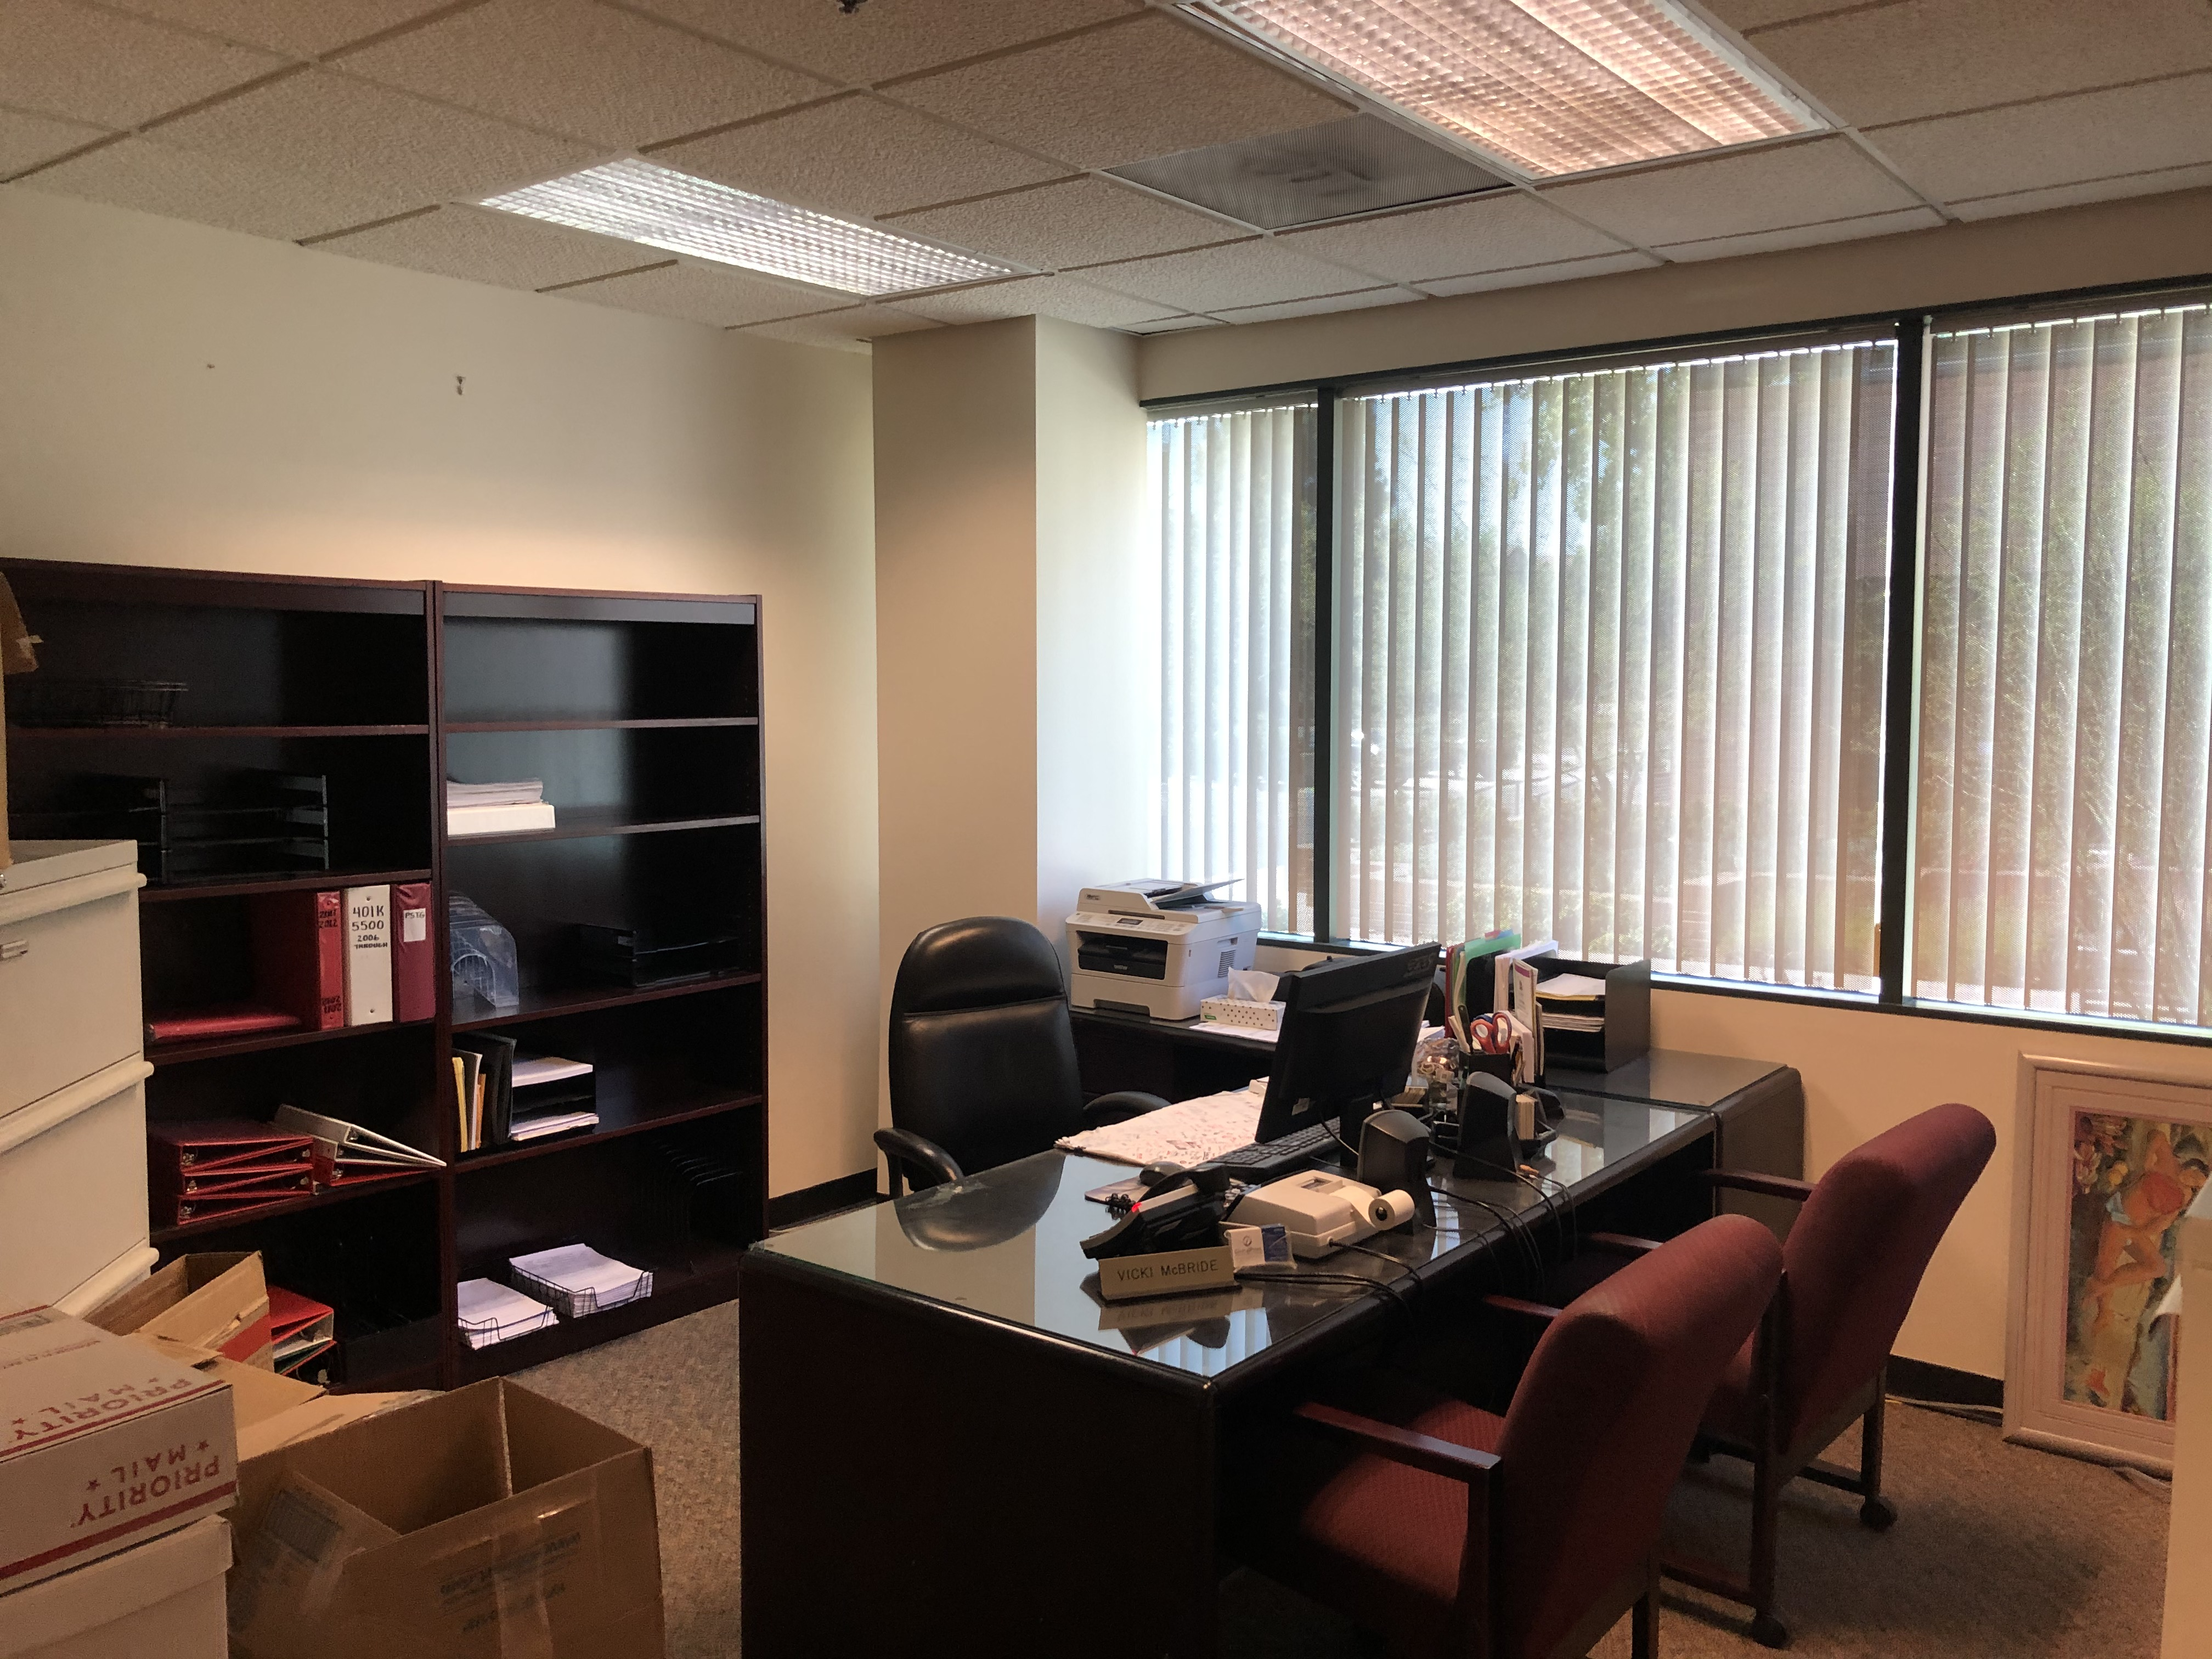 9710 Scranton Rd Sublease San Diego, CA 92121 Office